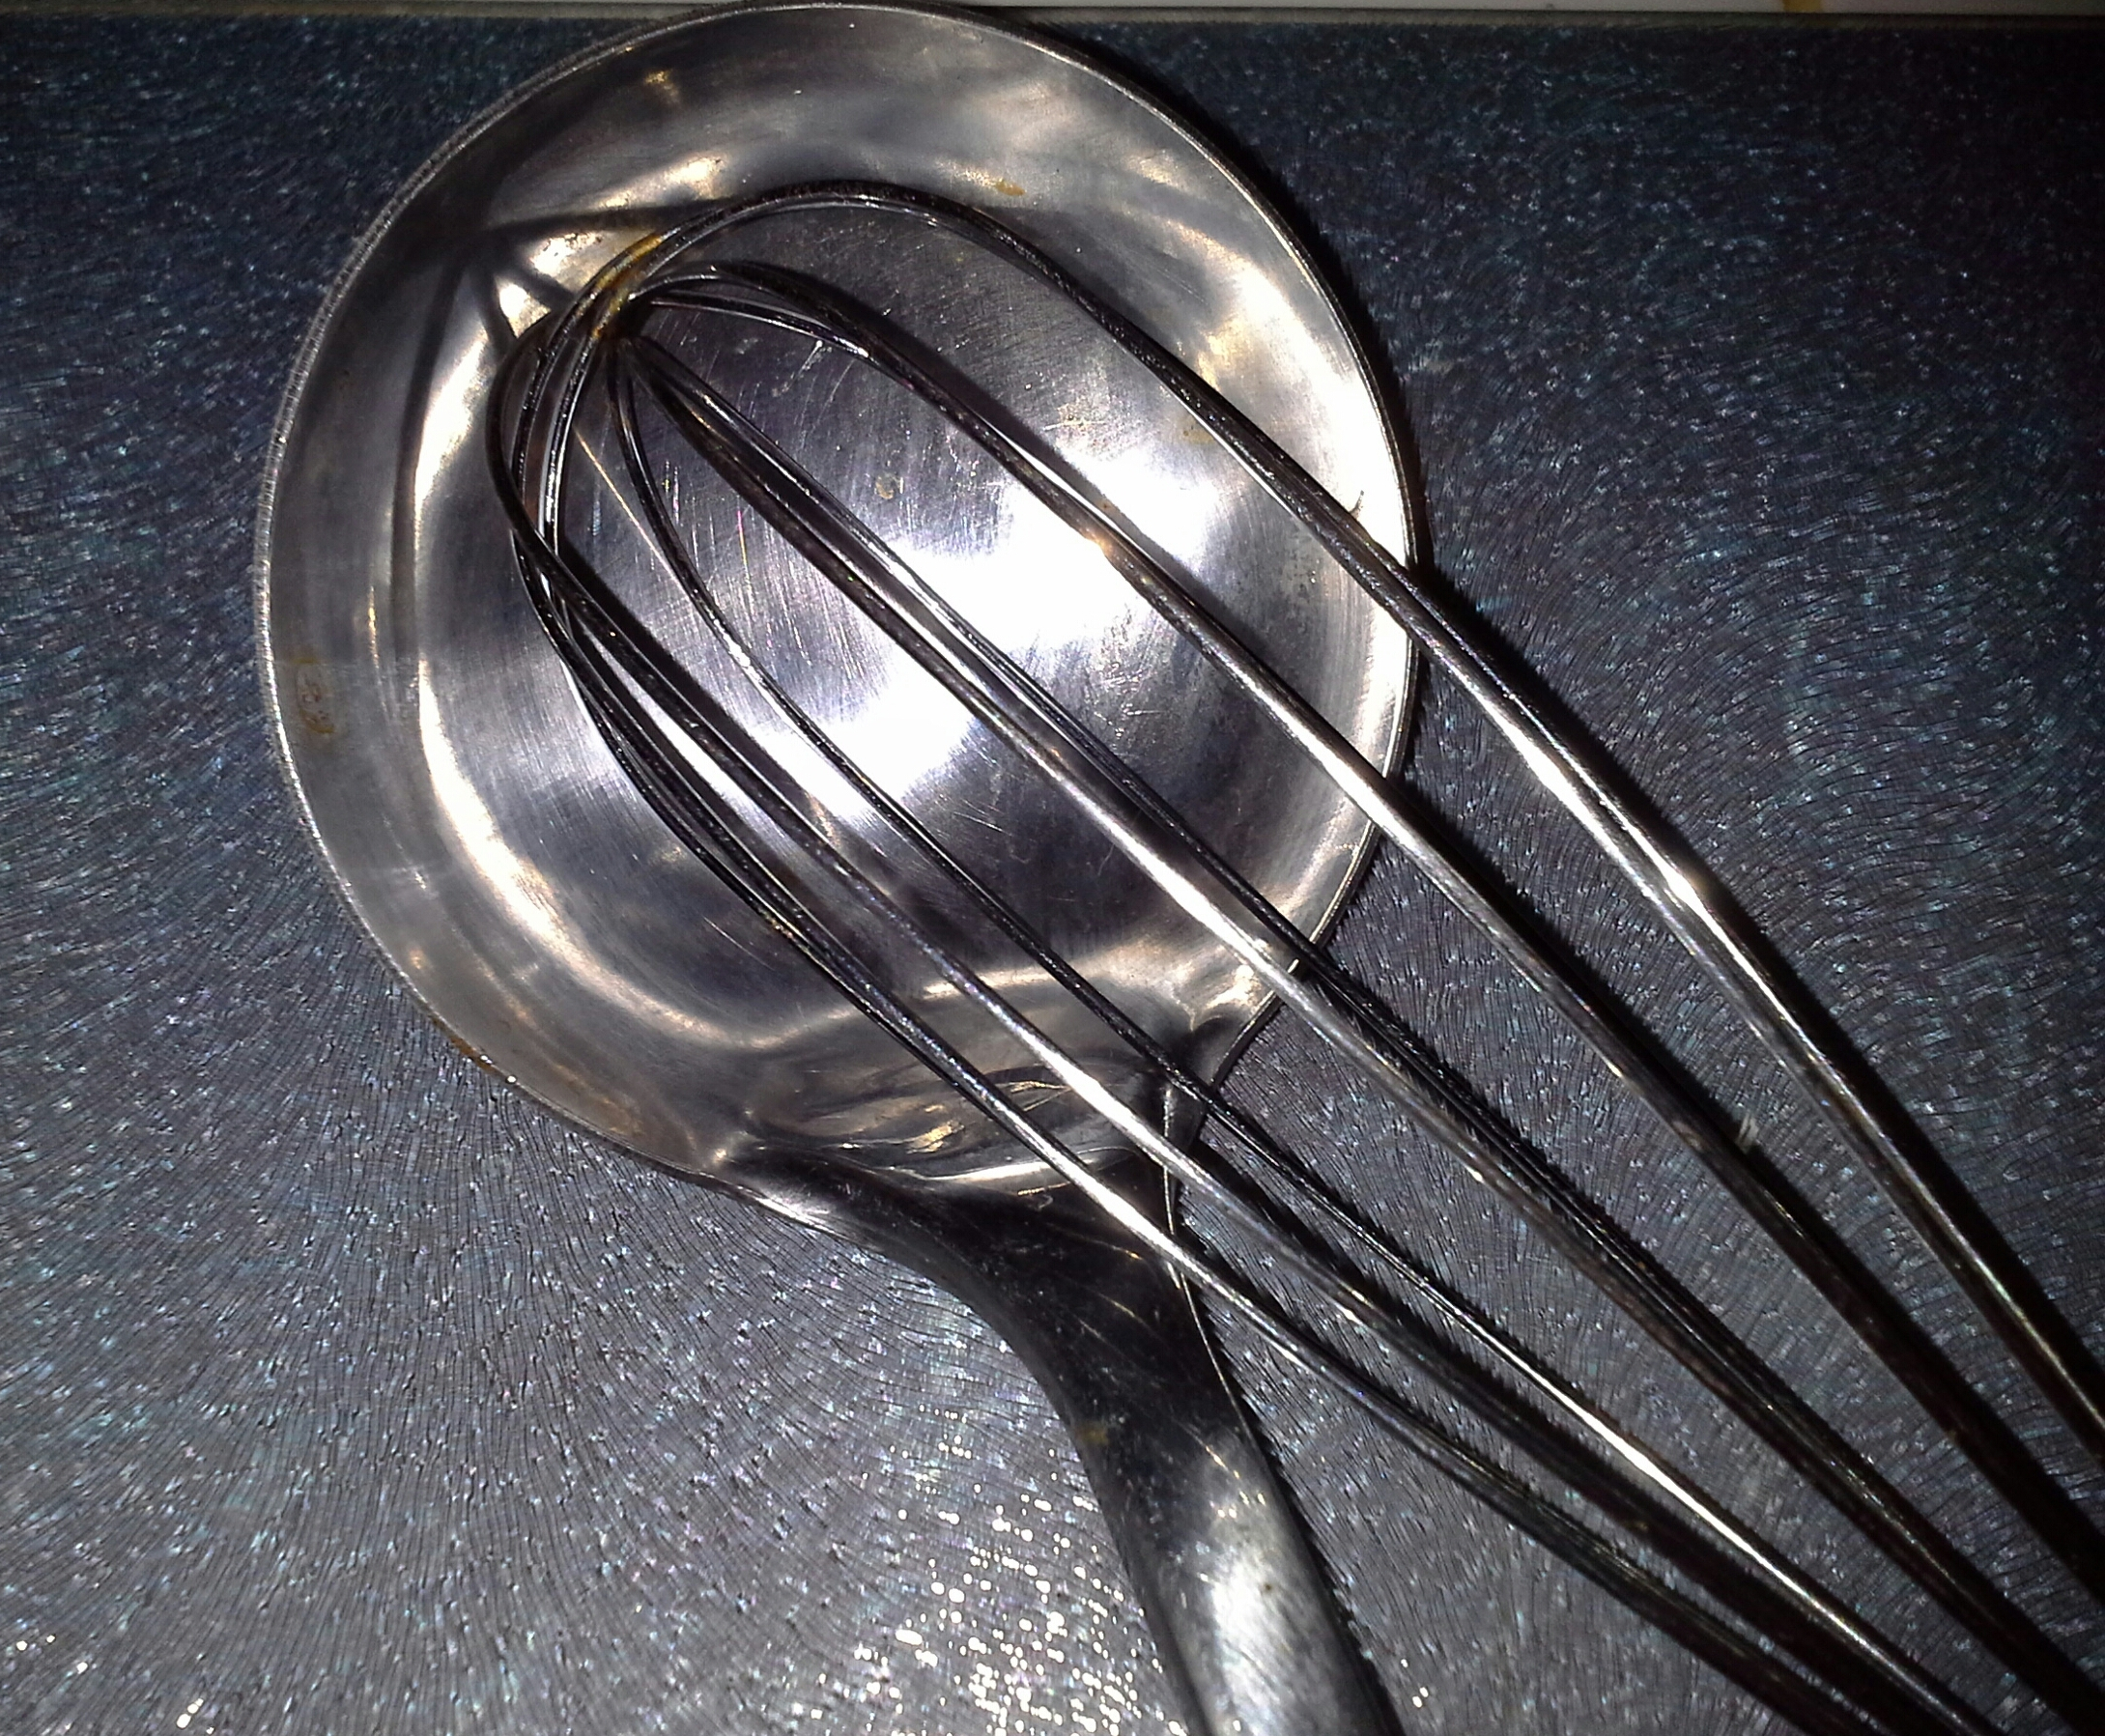 Ladle and egg whisk